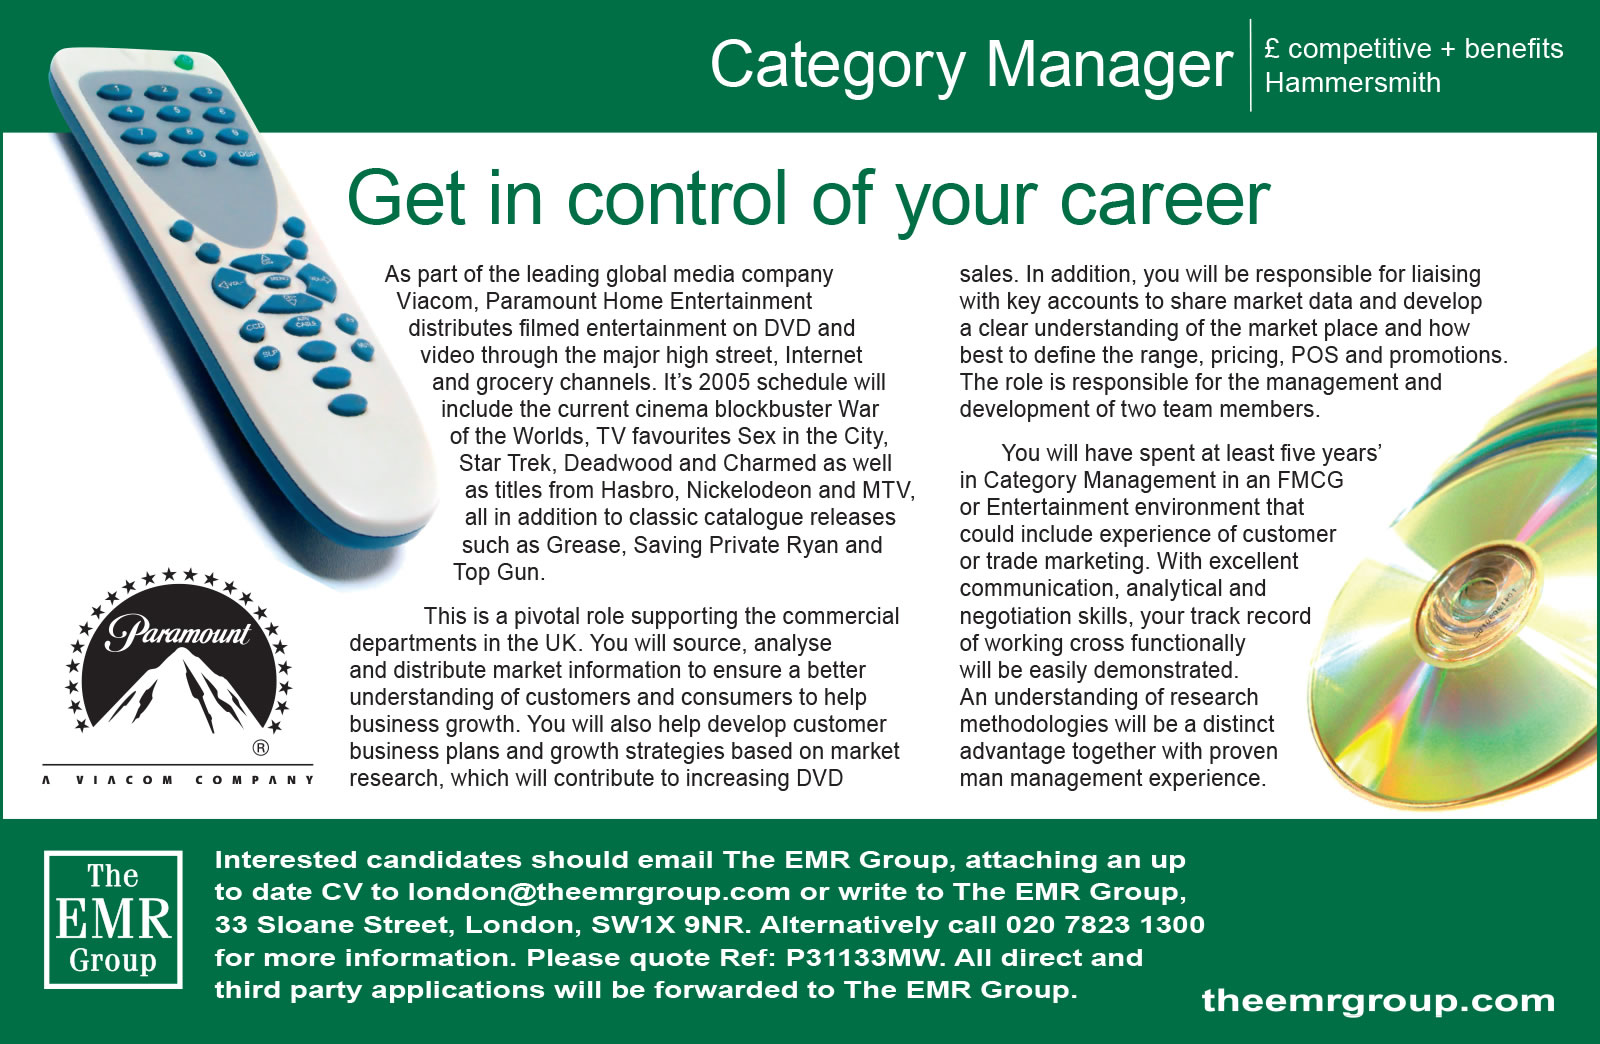 EMR - Recruitment advert - Paramount